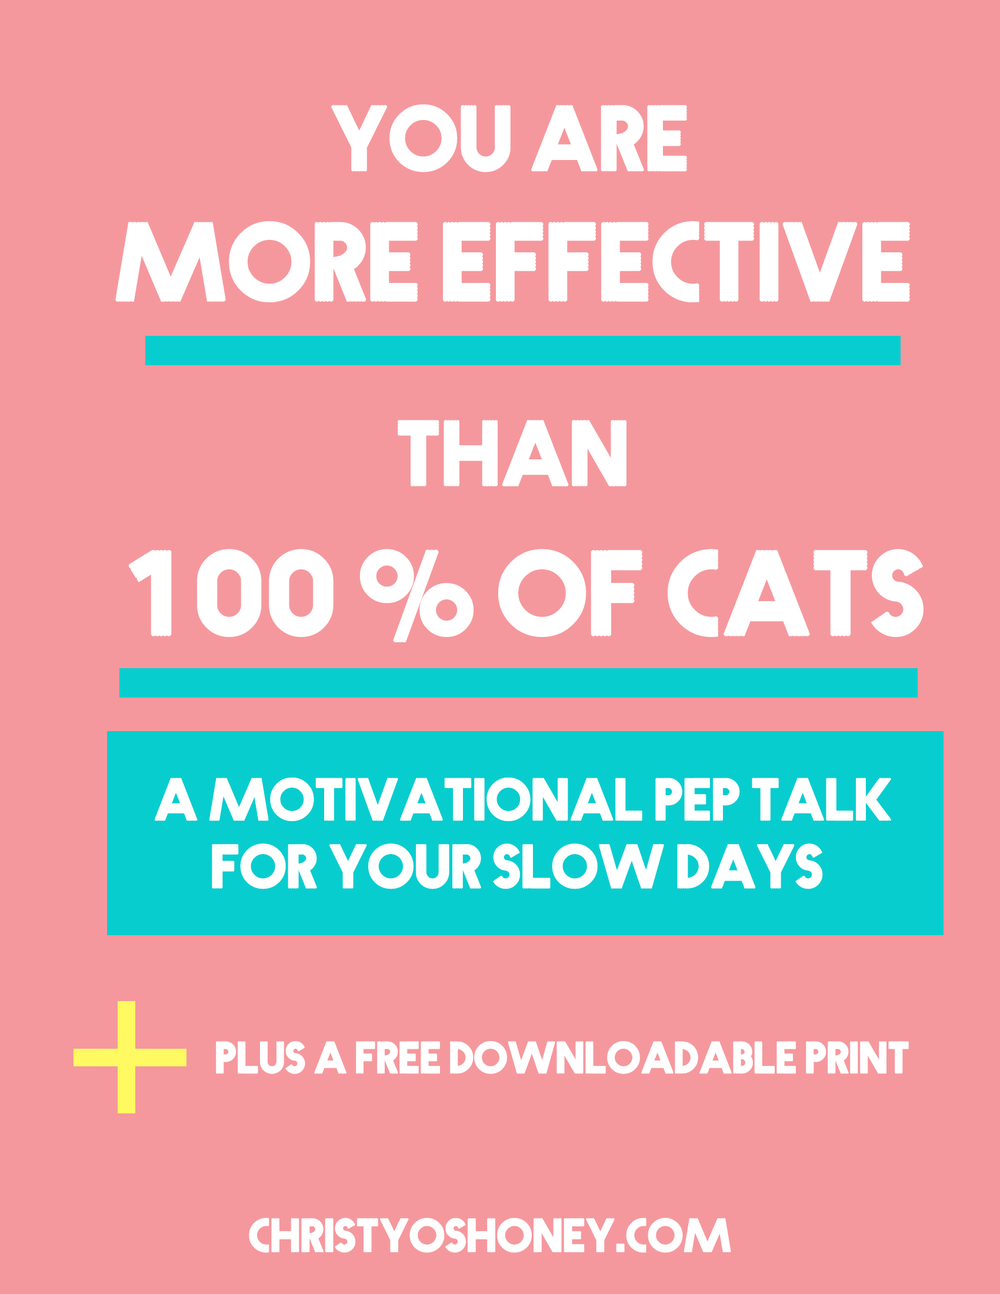 Do you ever feel like you have just completely wasted your entire day? Here's a quick motivational pep talk from Christy O'Shoney, the thesis of which is this: you are at least more effective than a cat. Also, there's a free downloadable inspirational print included! I mean, who wouldn't want that?! Click through to claim yours!